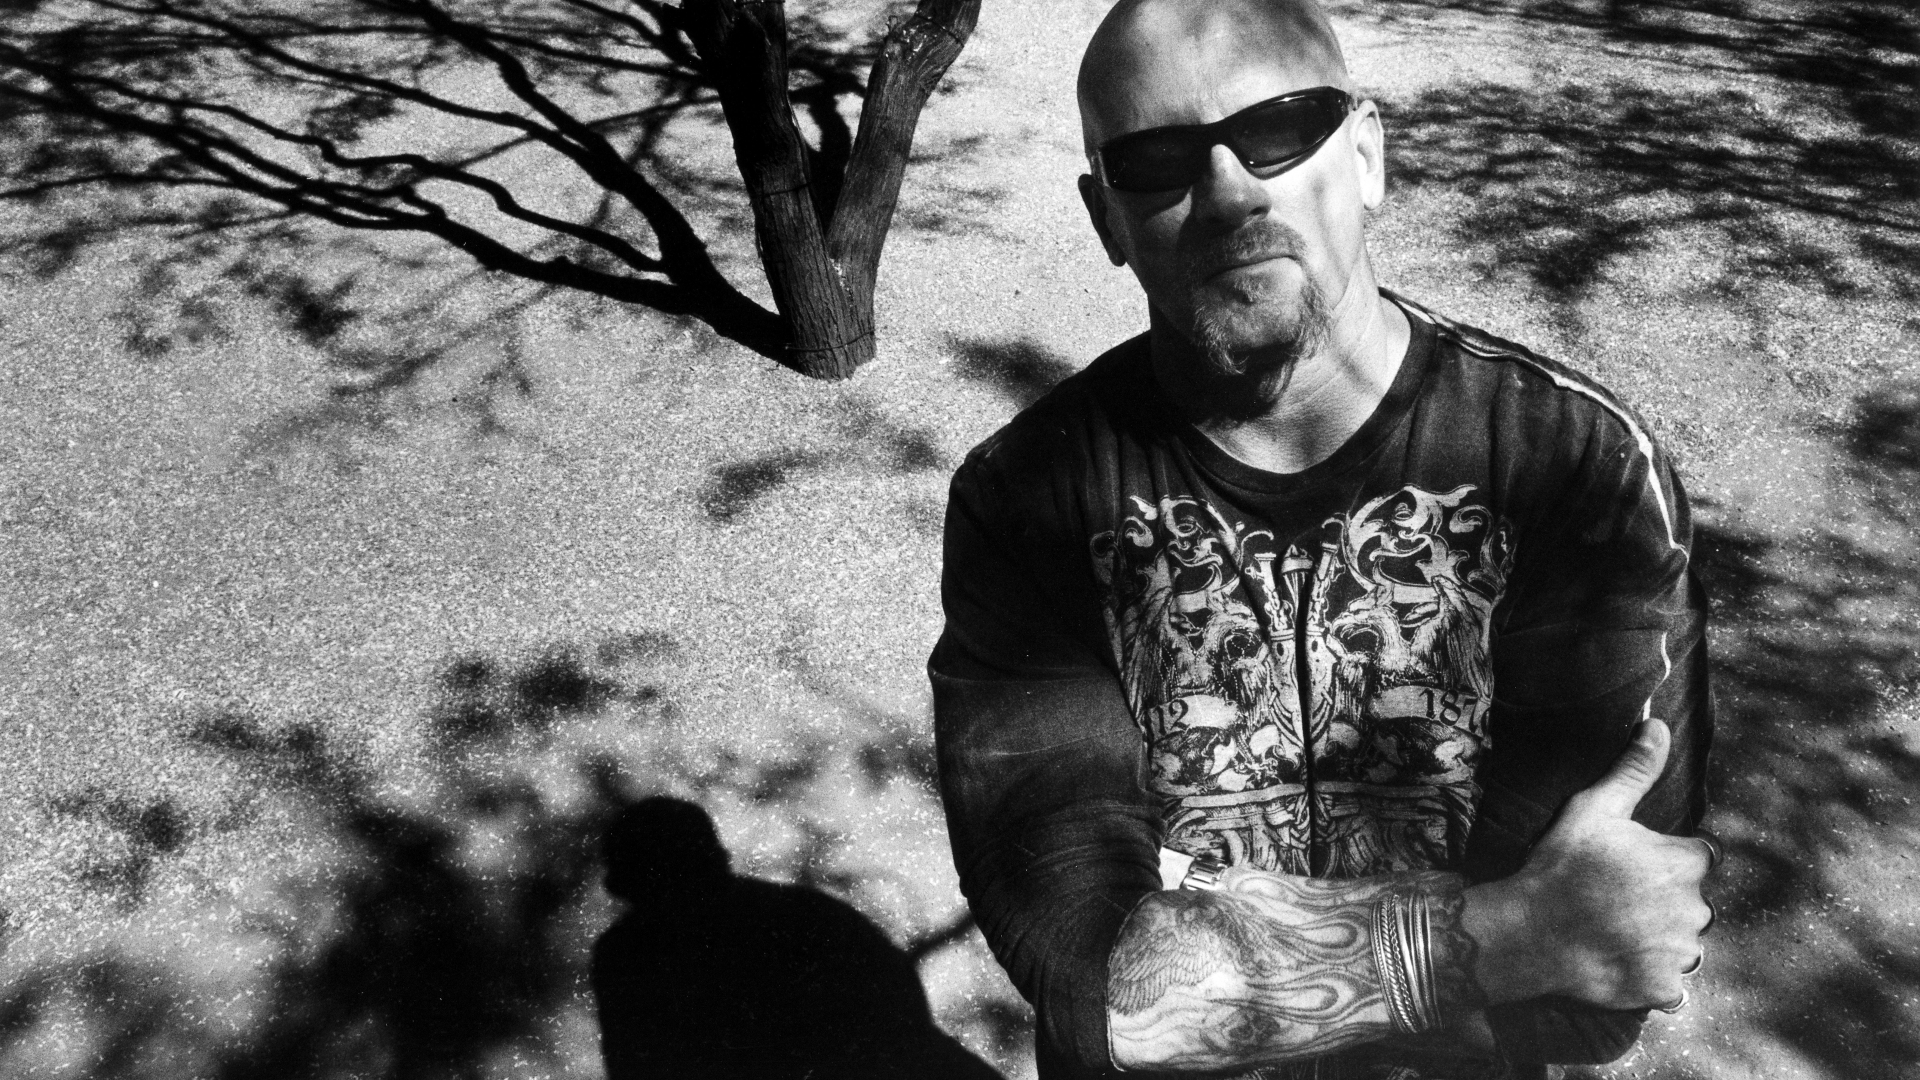 ATF Special Agent Jay Dobyns, who went undercover inside the notorious biker gang, Hells Angels. (Credit: Ian Martin/Getty Images)